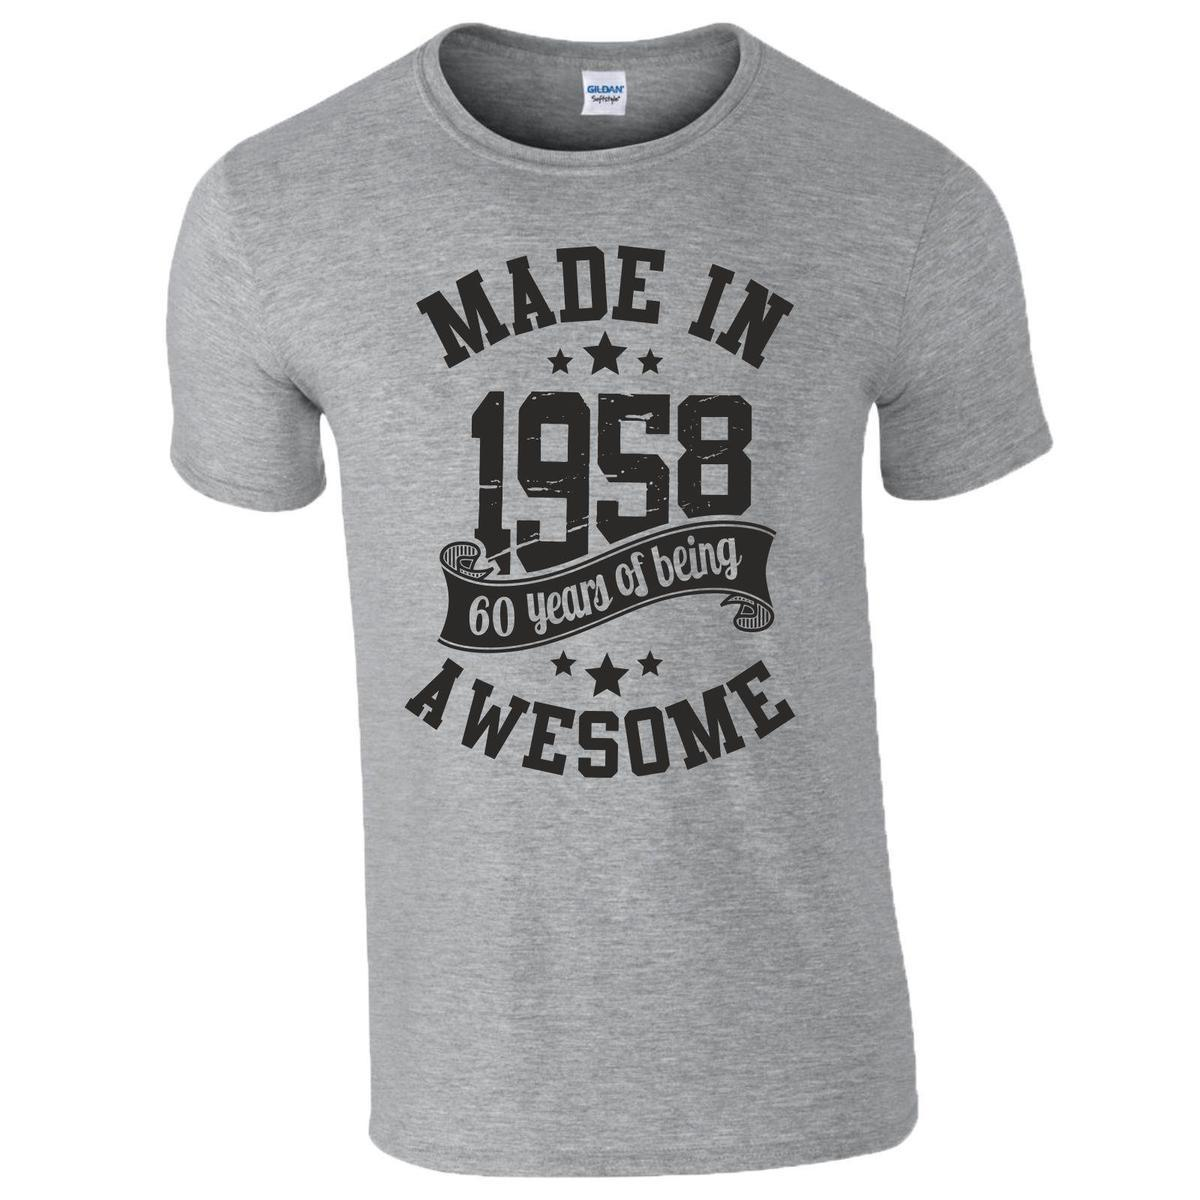 a1b4b07b2 60th Birthday Gift T Shirt Made In 1958 Being Awesome Age 60 Years Mens  Ladies Cool Tee Shirts Designs Web T Shirts From Yuxin0004, $13.8|  DHgate.Com